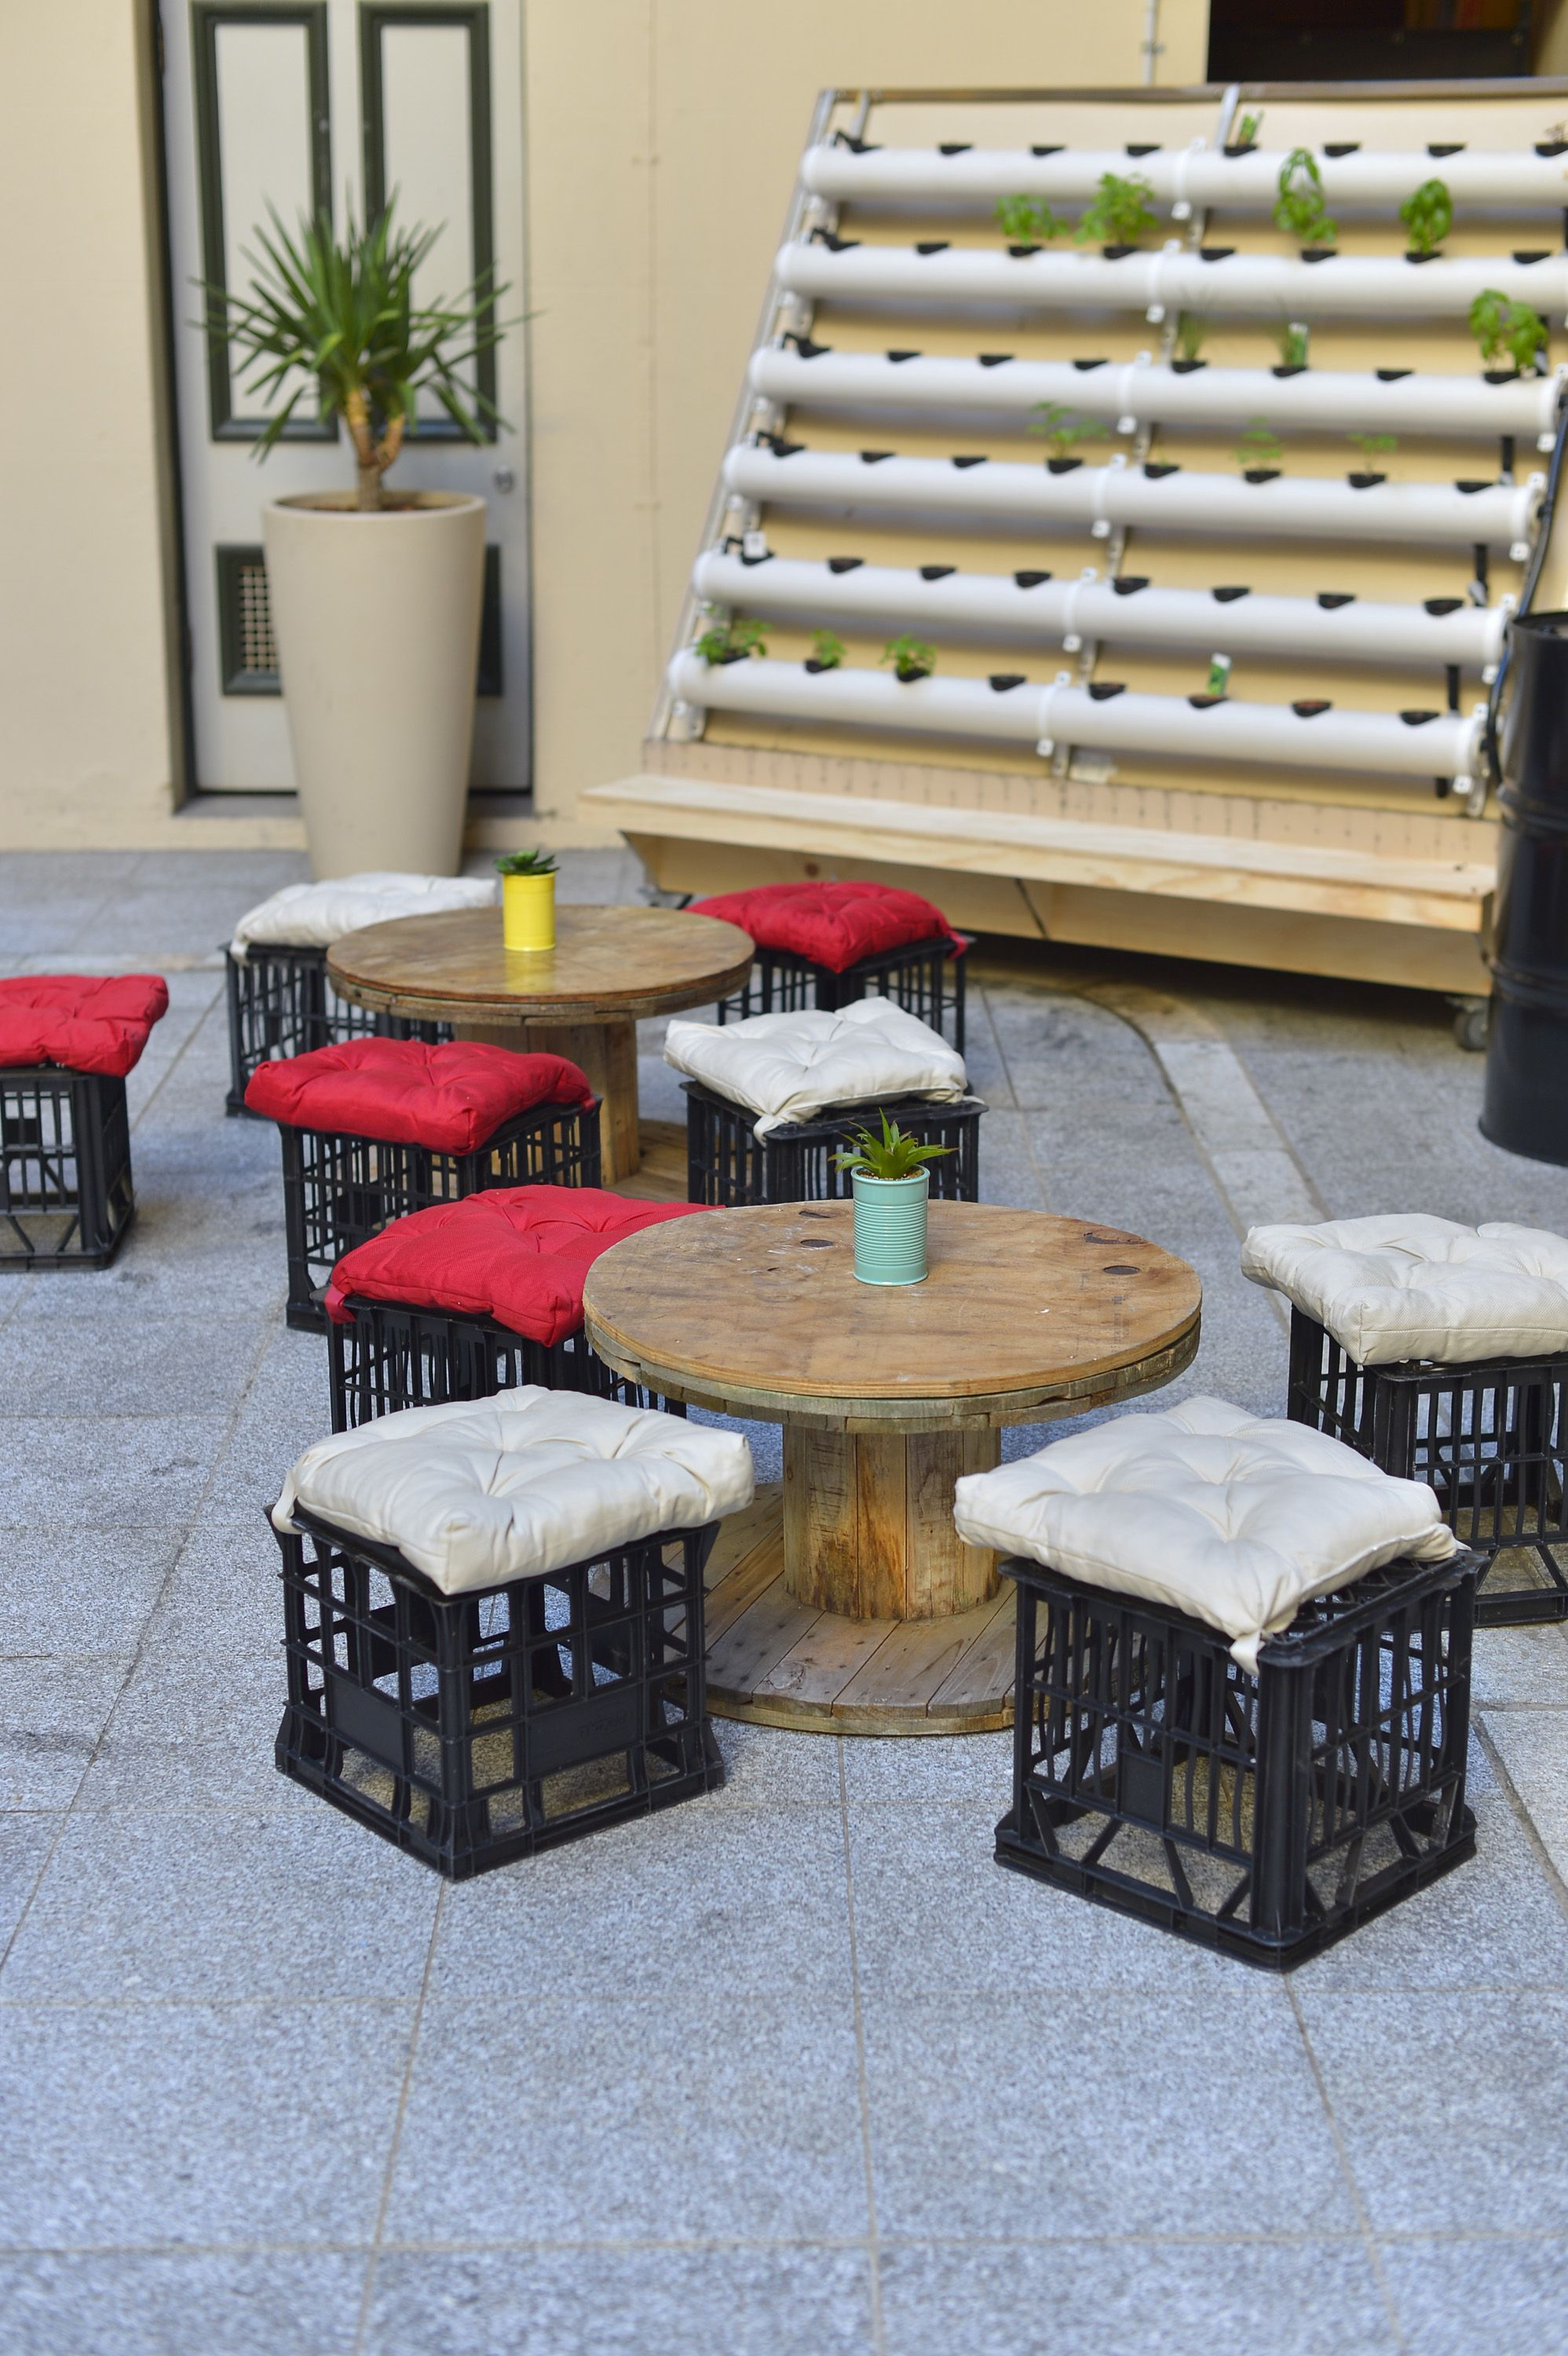 Balkonhocker Spool Coffee Tables With Milk Crate Seats In Front Of A Herb Wall